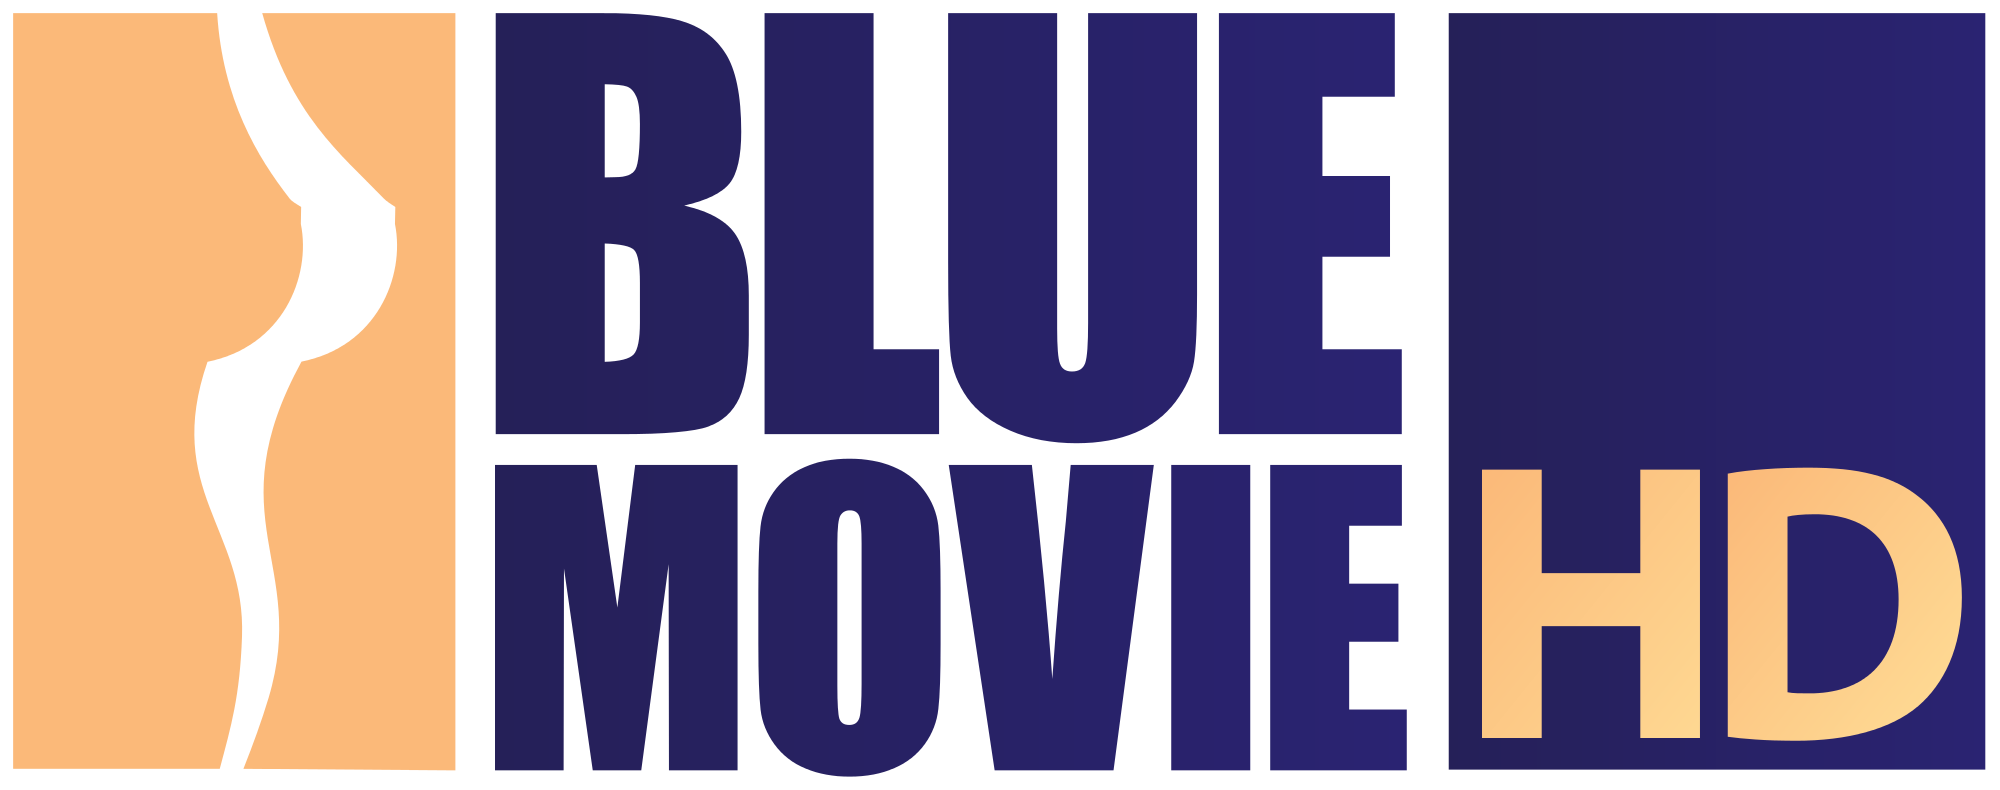 Open PlusPng.com  - PNG HD Movie